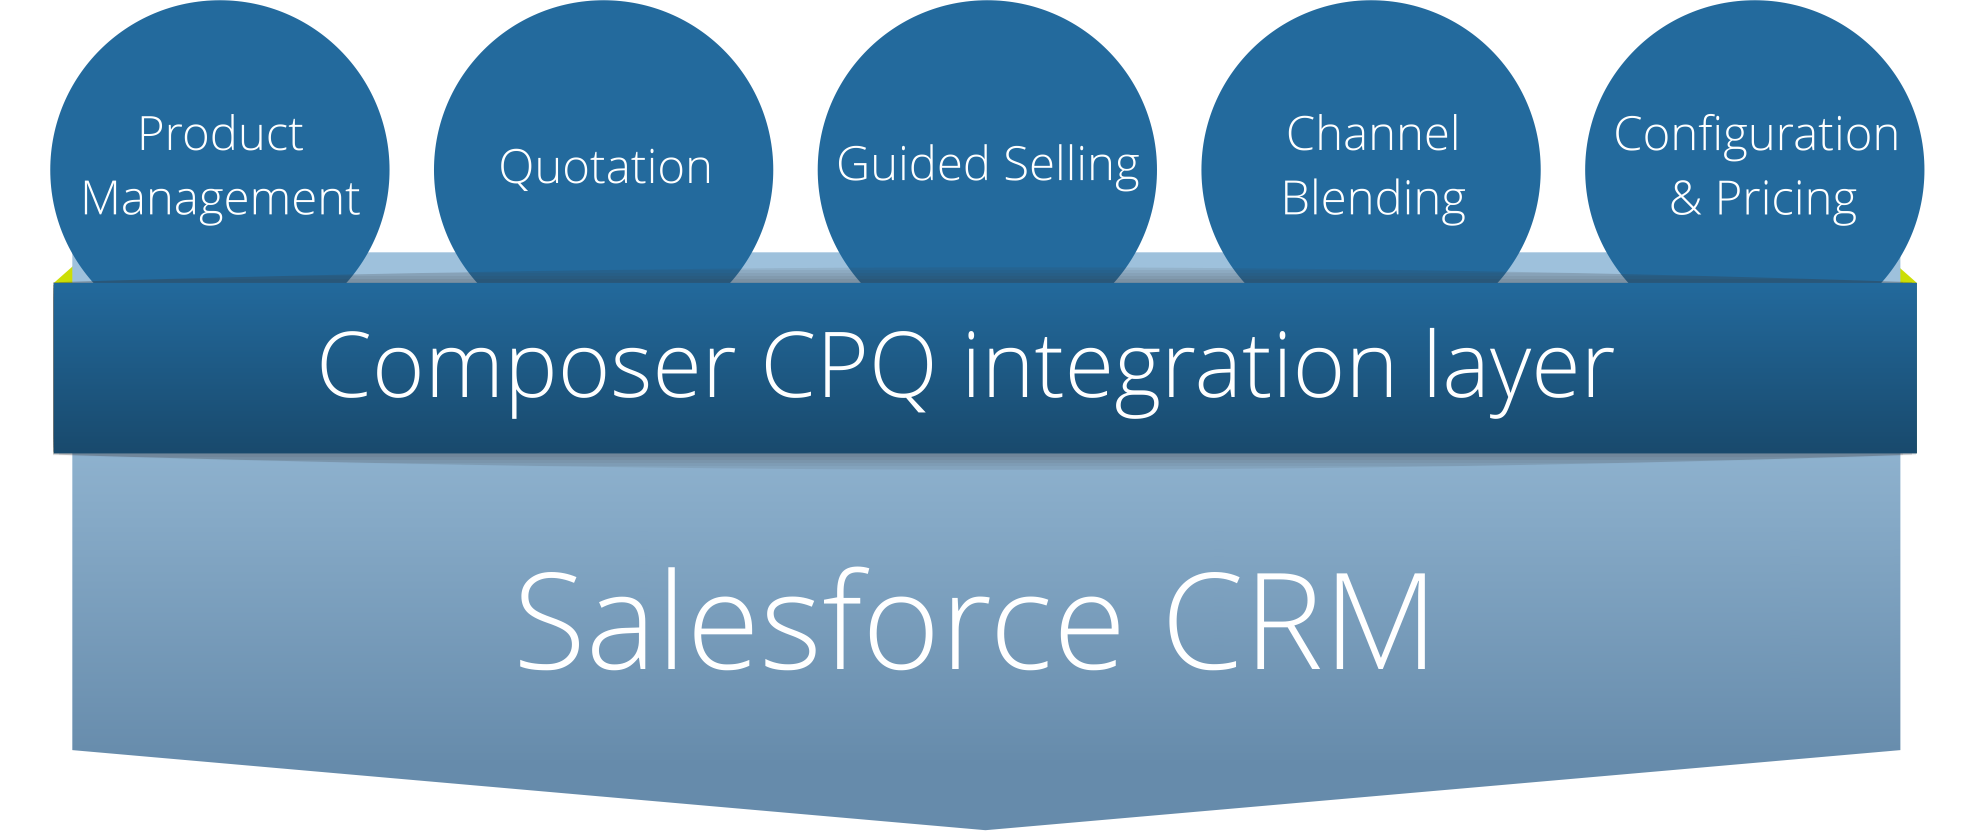 Salesforce_CRM_ENG_m